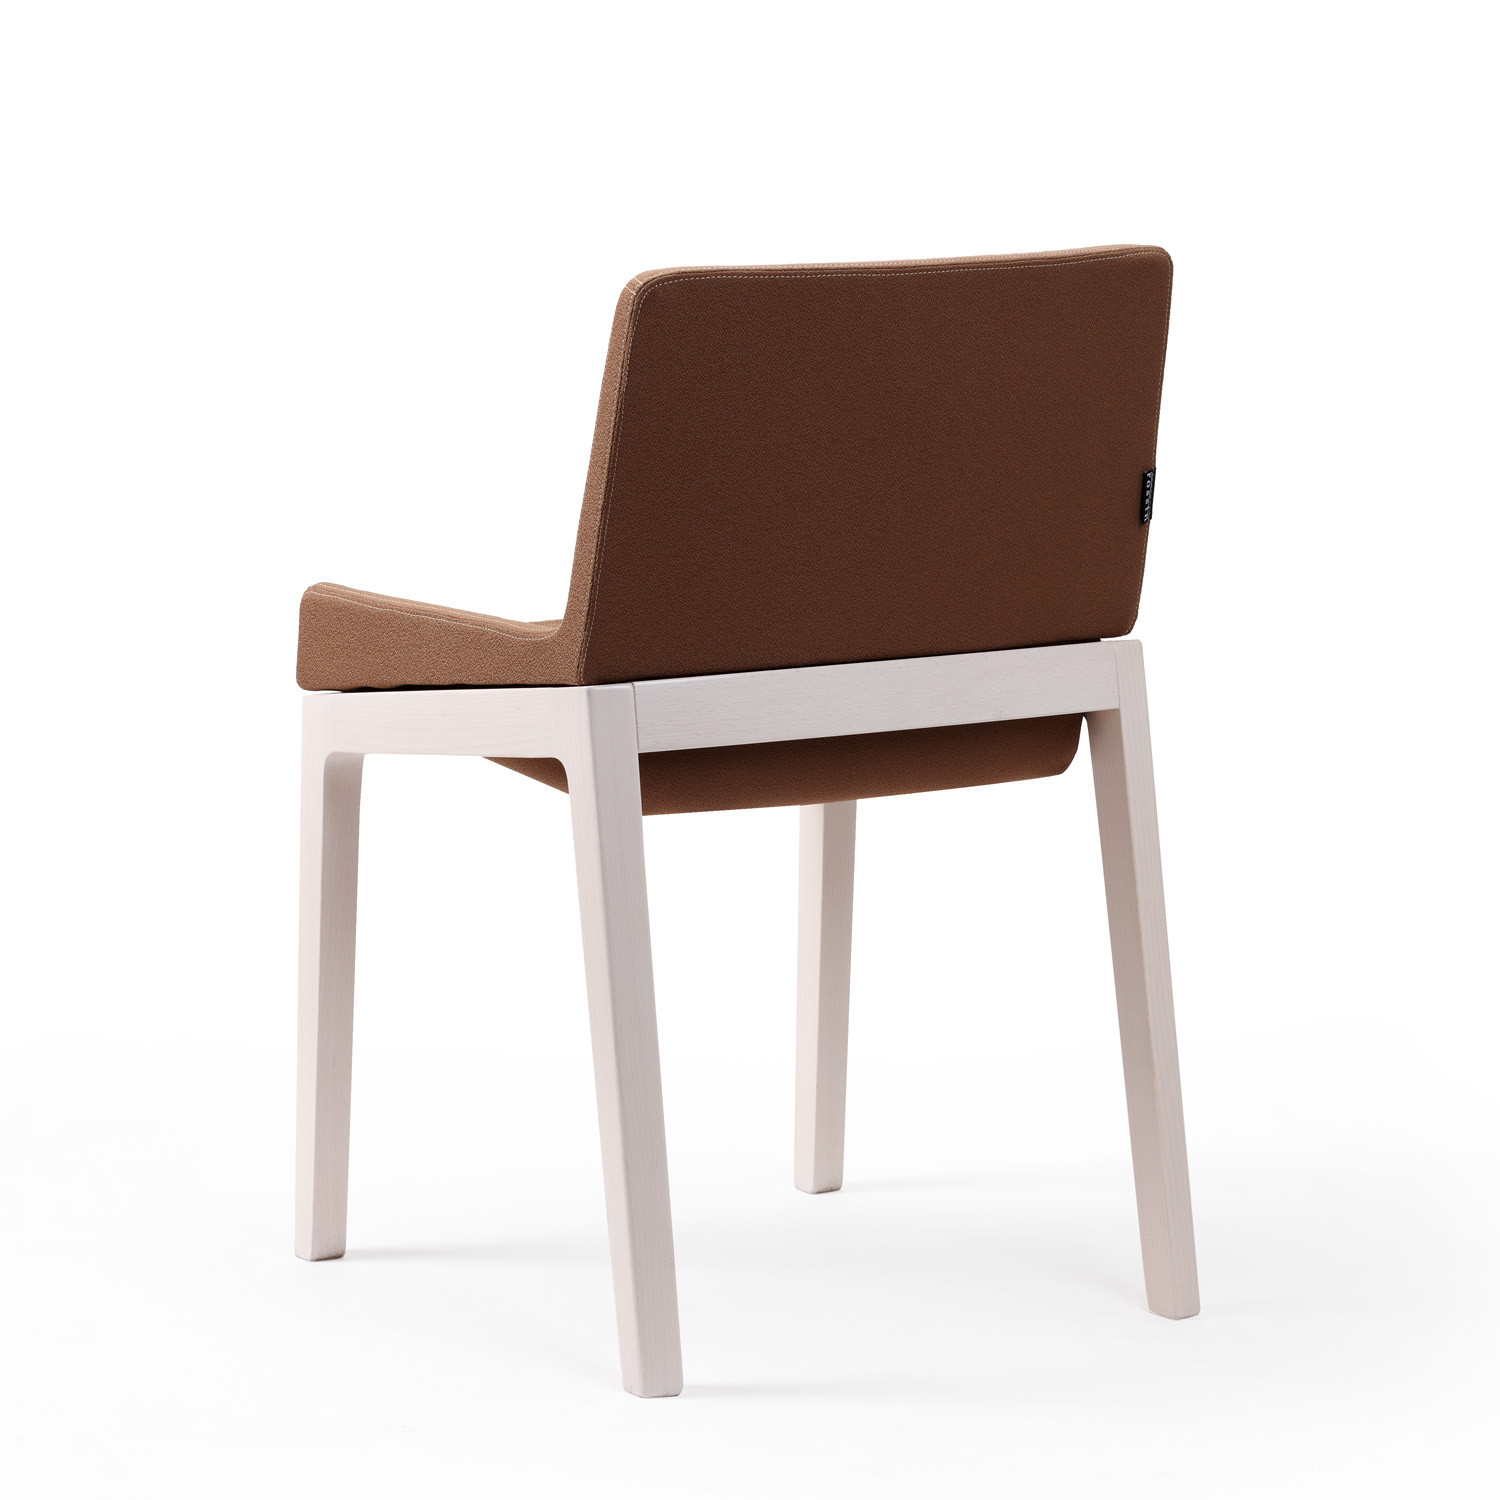 Tonic 4-Legged Chair Rear